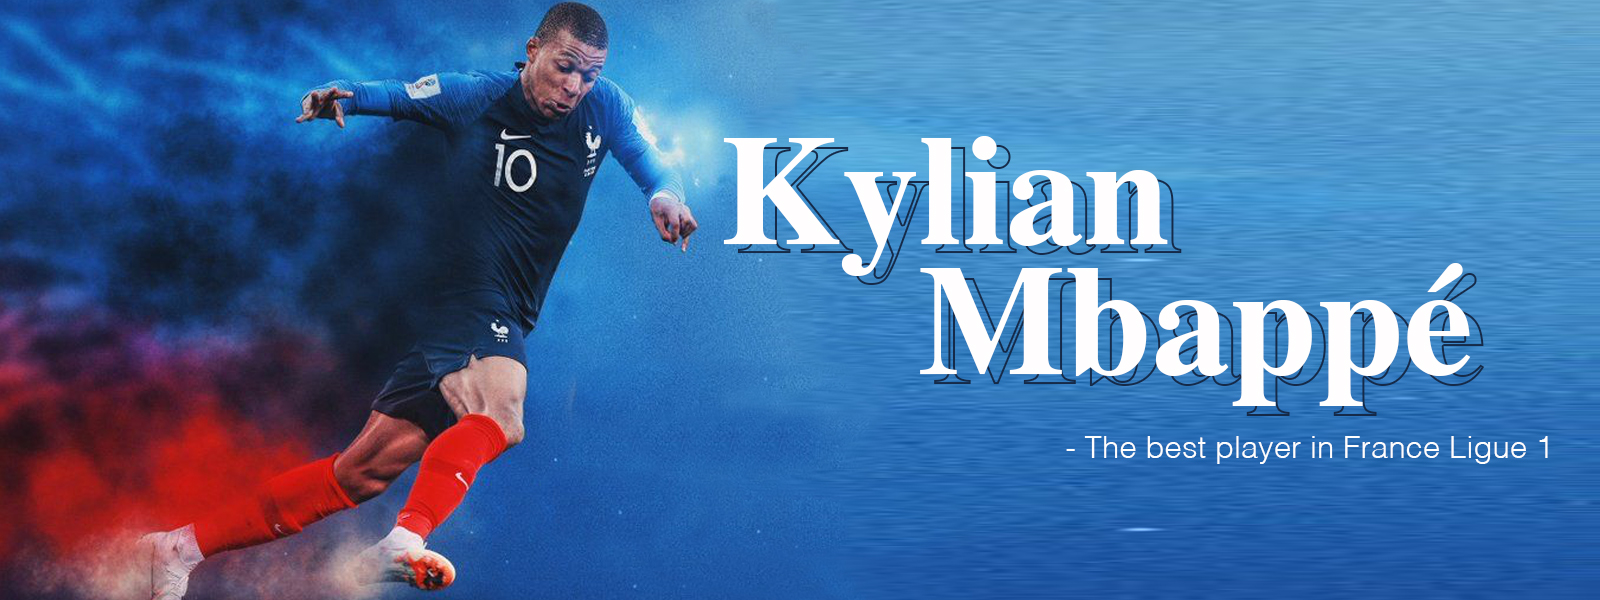 Kylian Mbappé - The Best Player In France Ligue 1